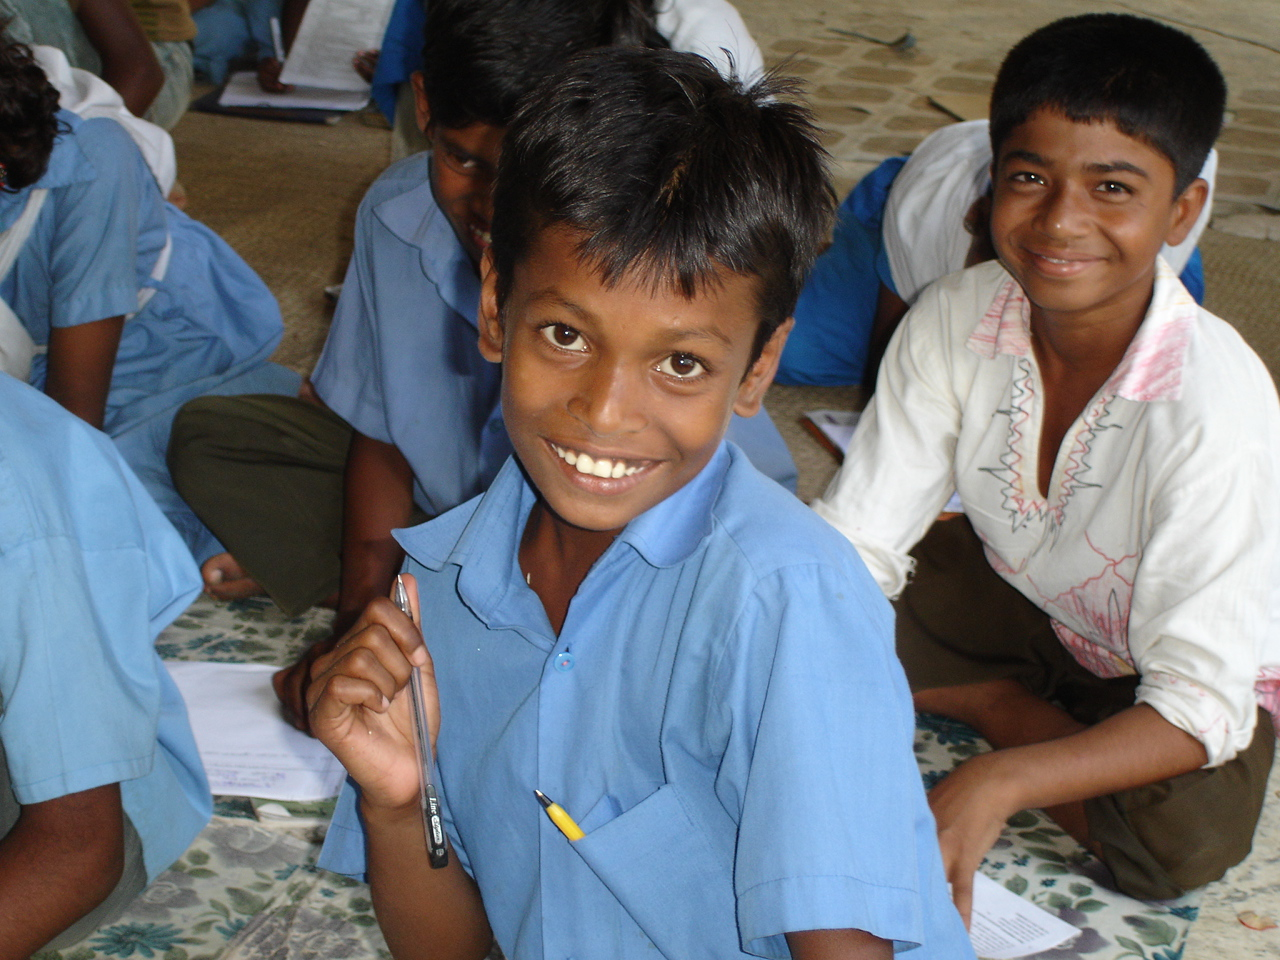 A young primary school student outside Dhaka smiles to the camera.